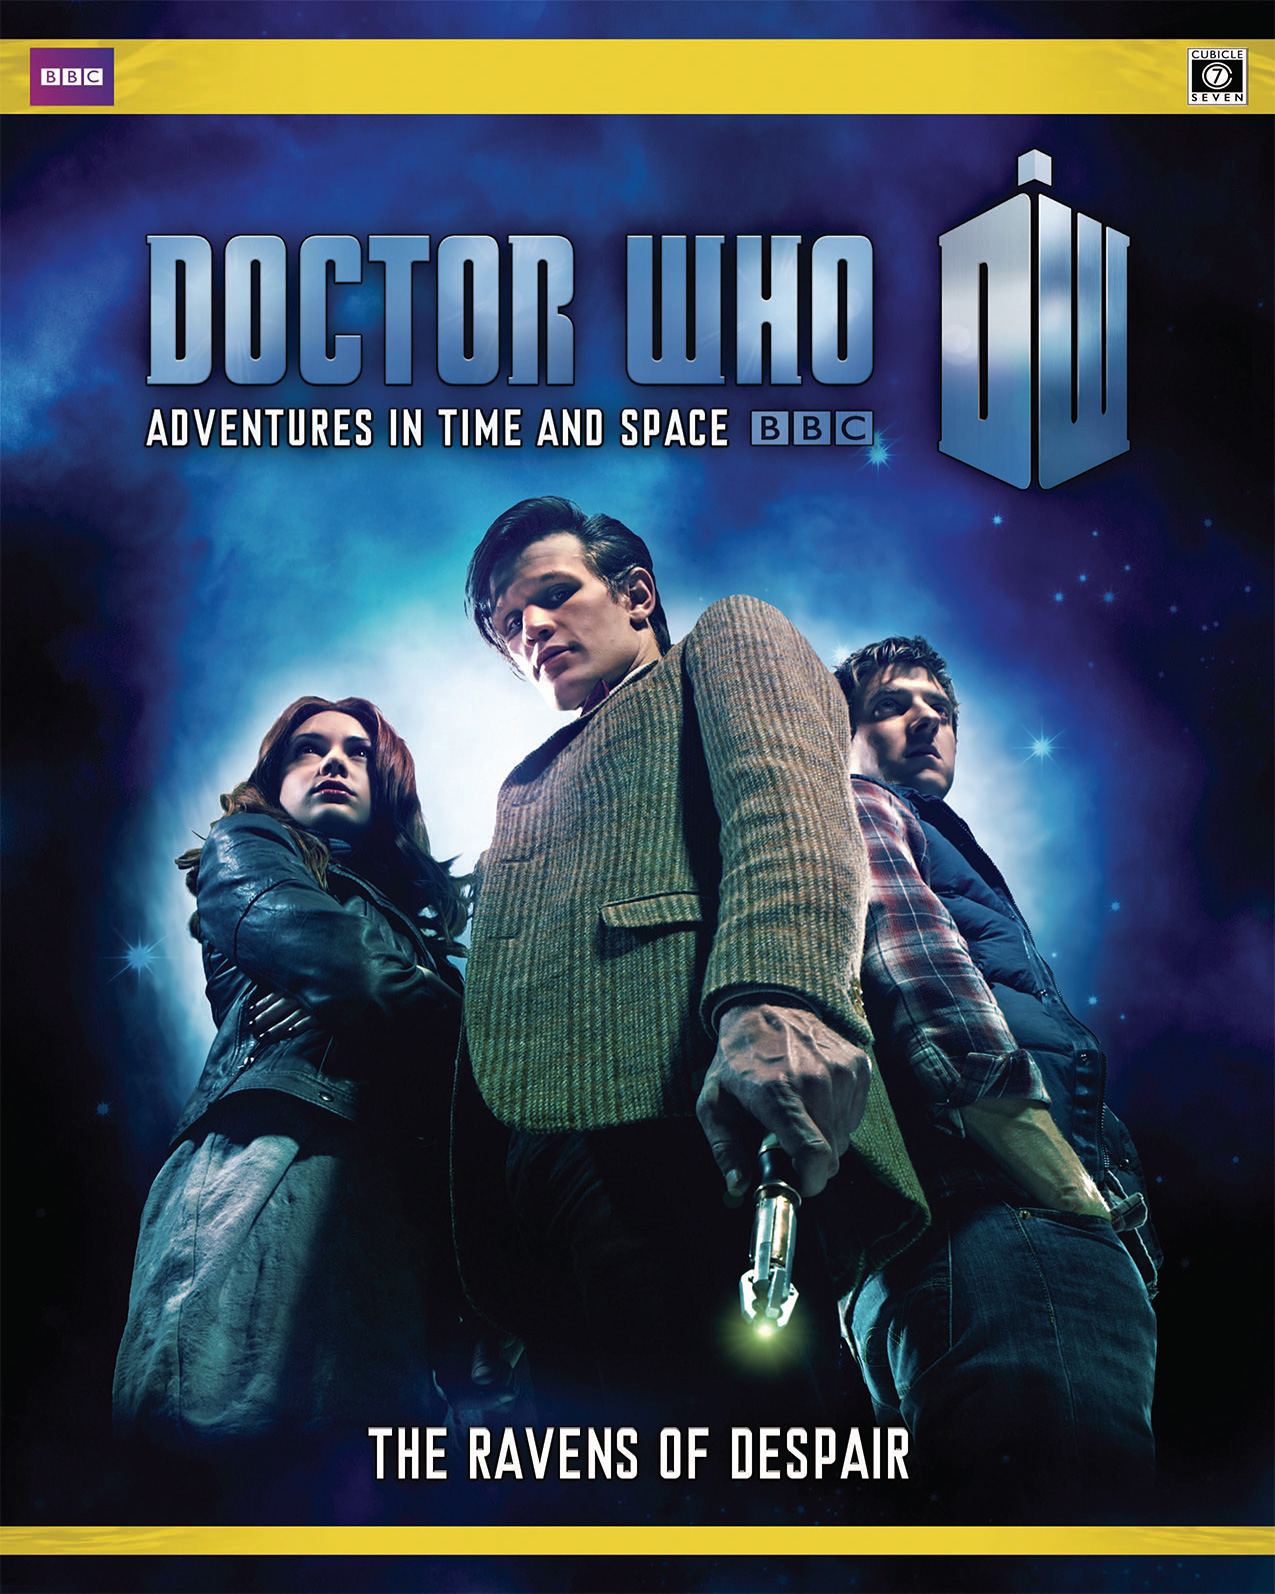 Doctor_WhoAdventures_in_Time_and_Space_-_The_Ravens_of_Despair-1